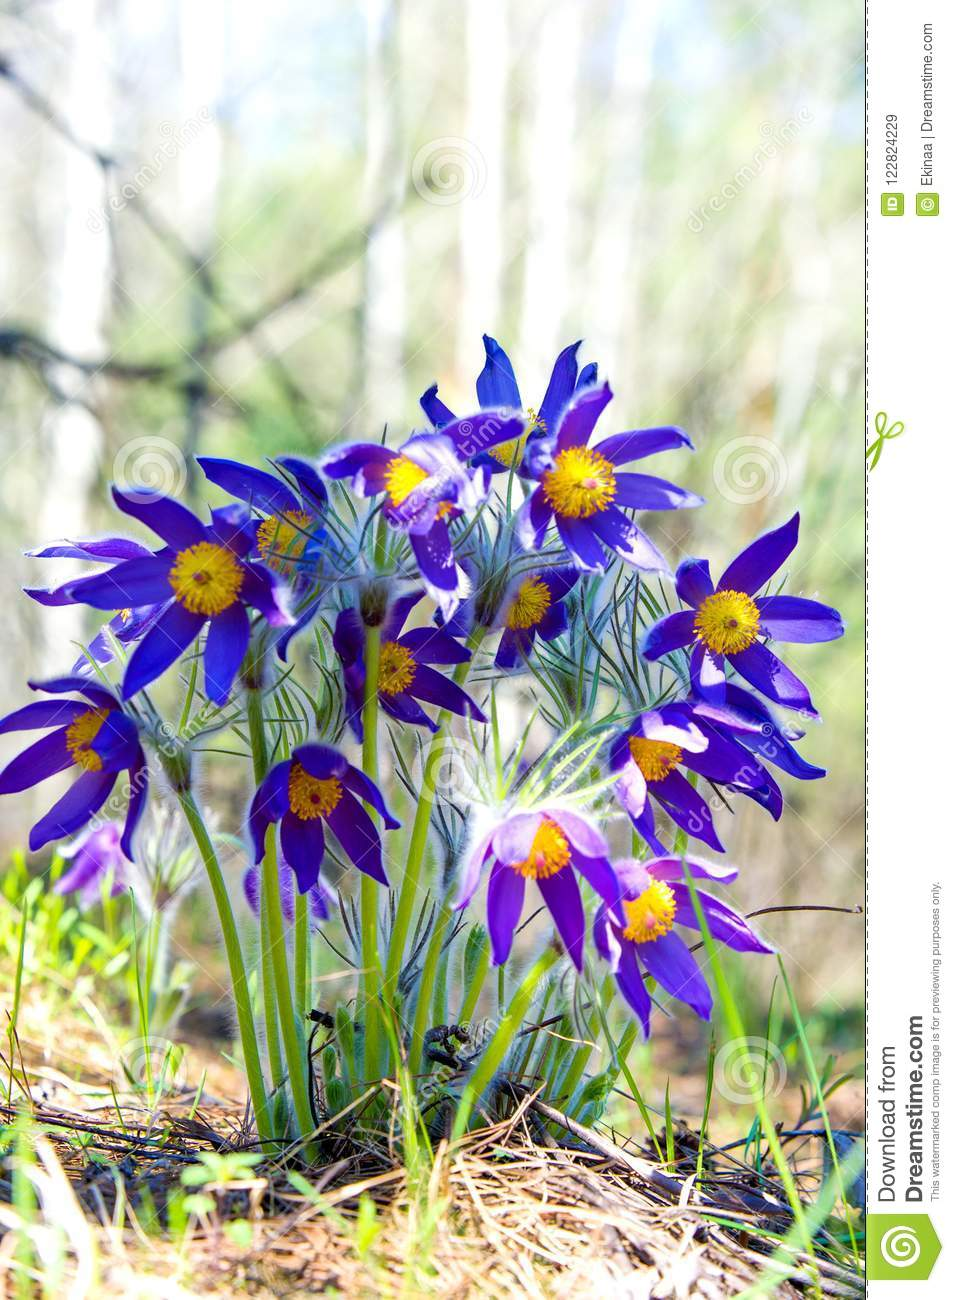 Spring Landscape Flowers Growing In The Wild Spring Flower Pul